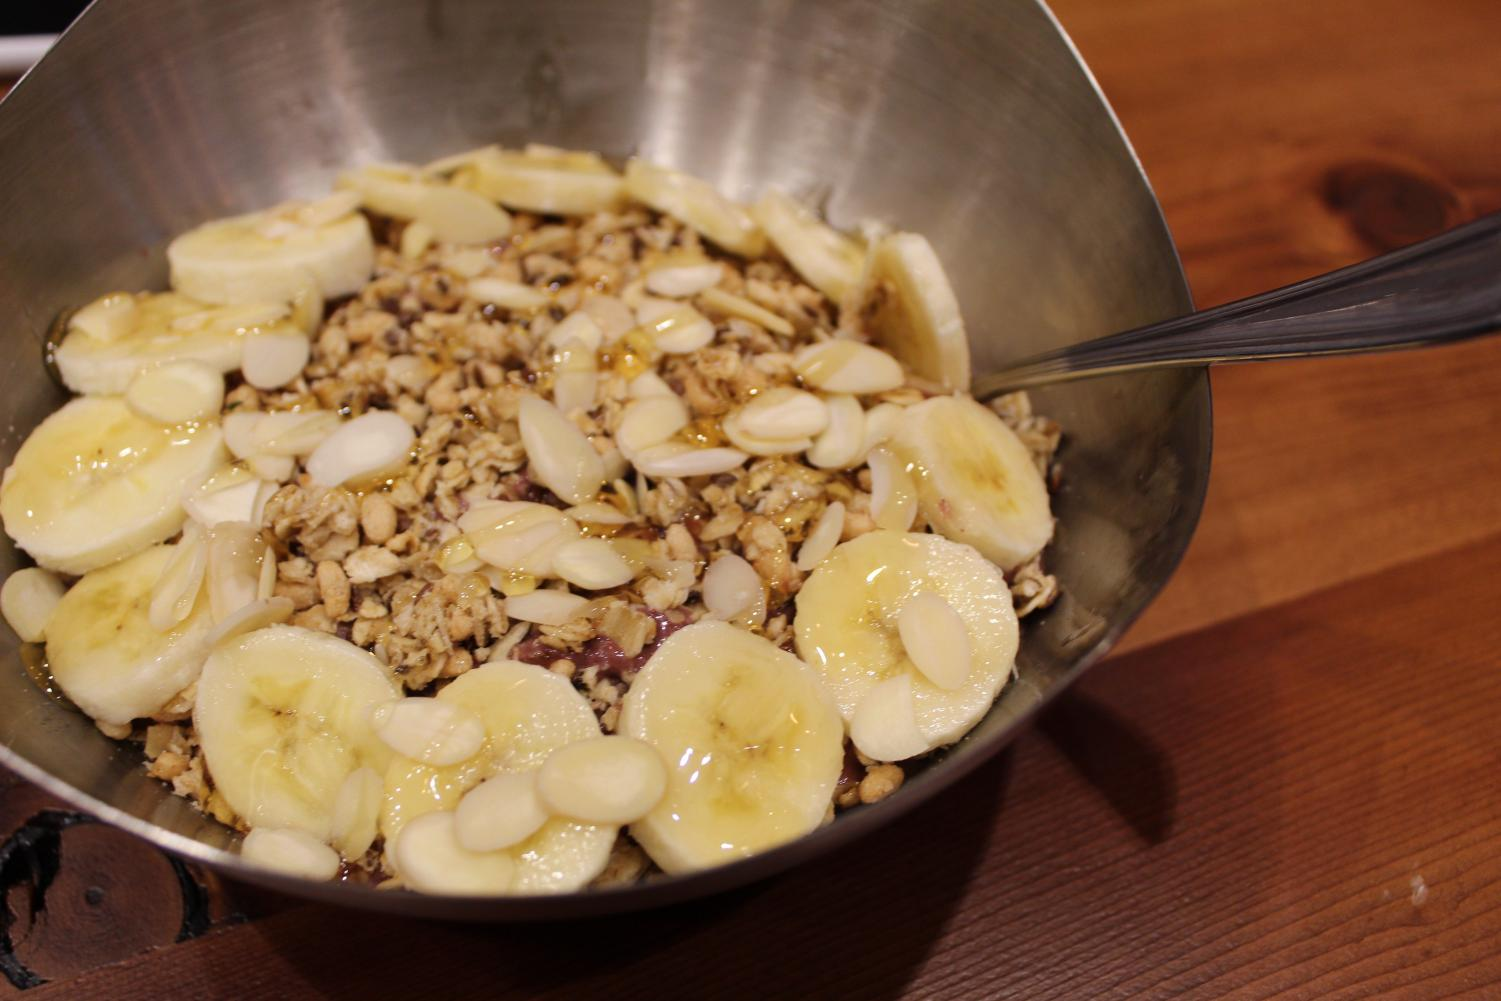 Vitality Bowls had a diverse menu with combinations of flavors sure to make your mouth water. Here I feast on the Nutty Bowl,  one of their most popular dishes. It combines their açaí mix, granola, bananas and honey for a delicious and refreshing meal.